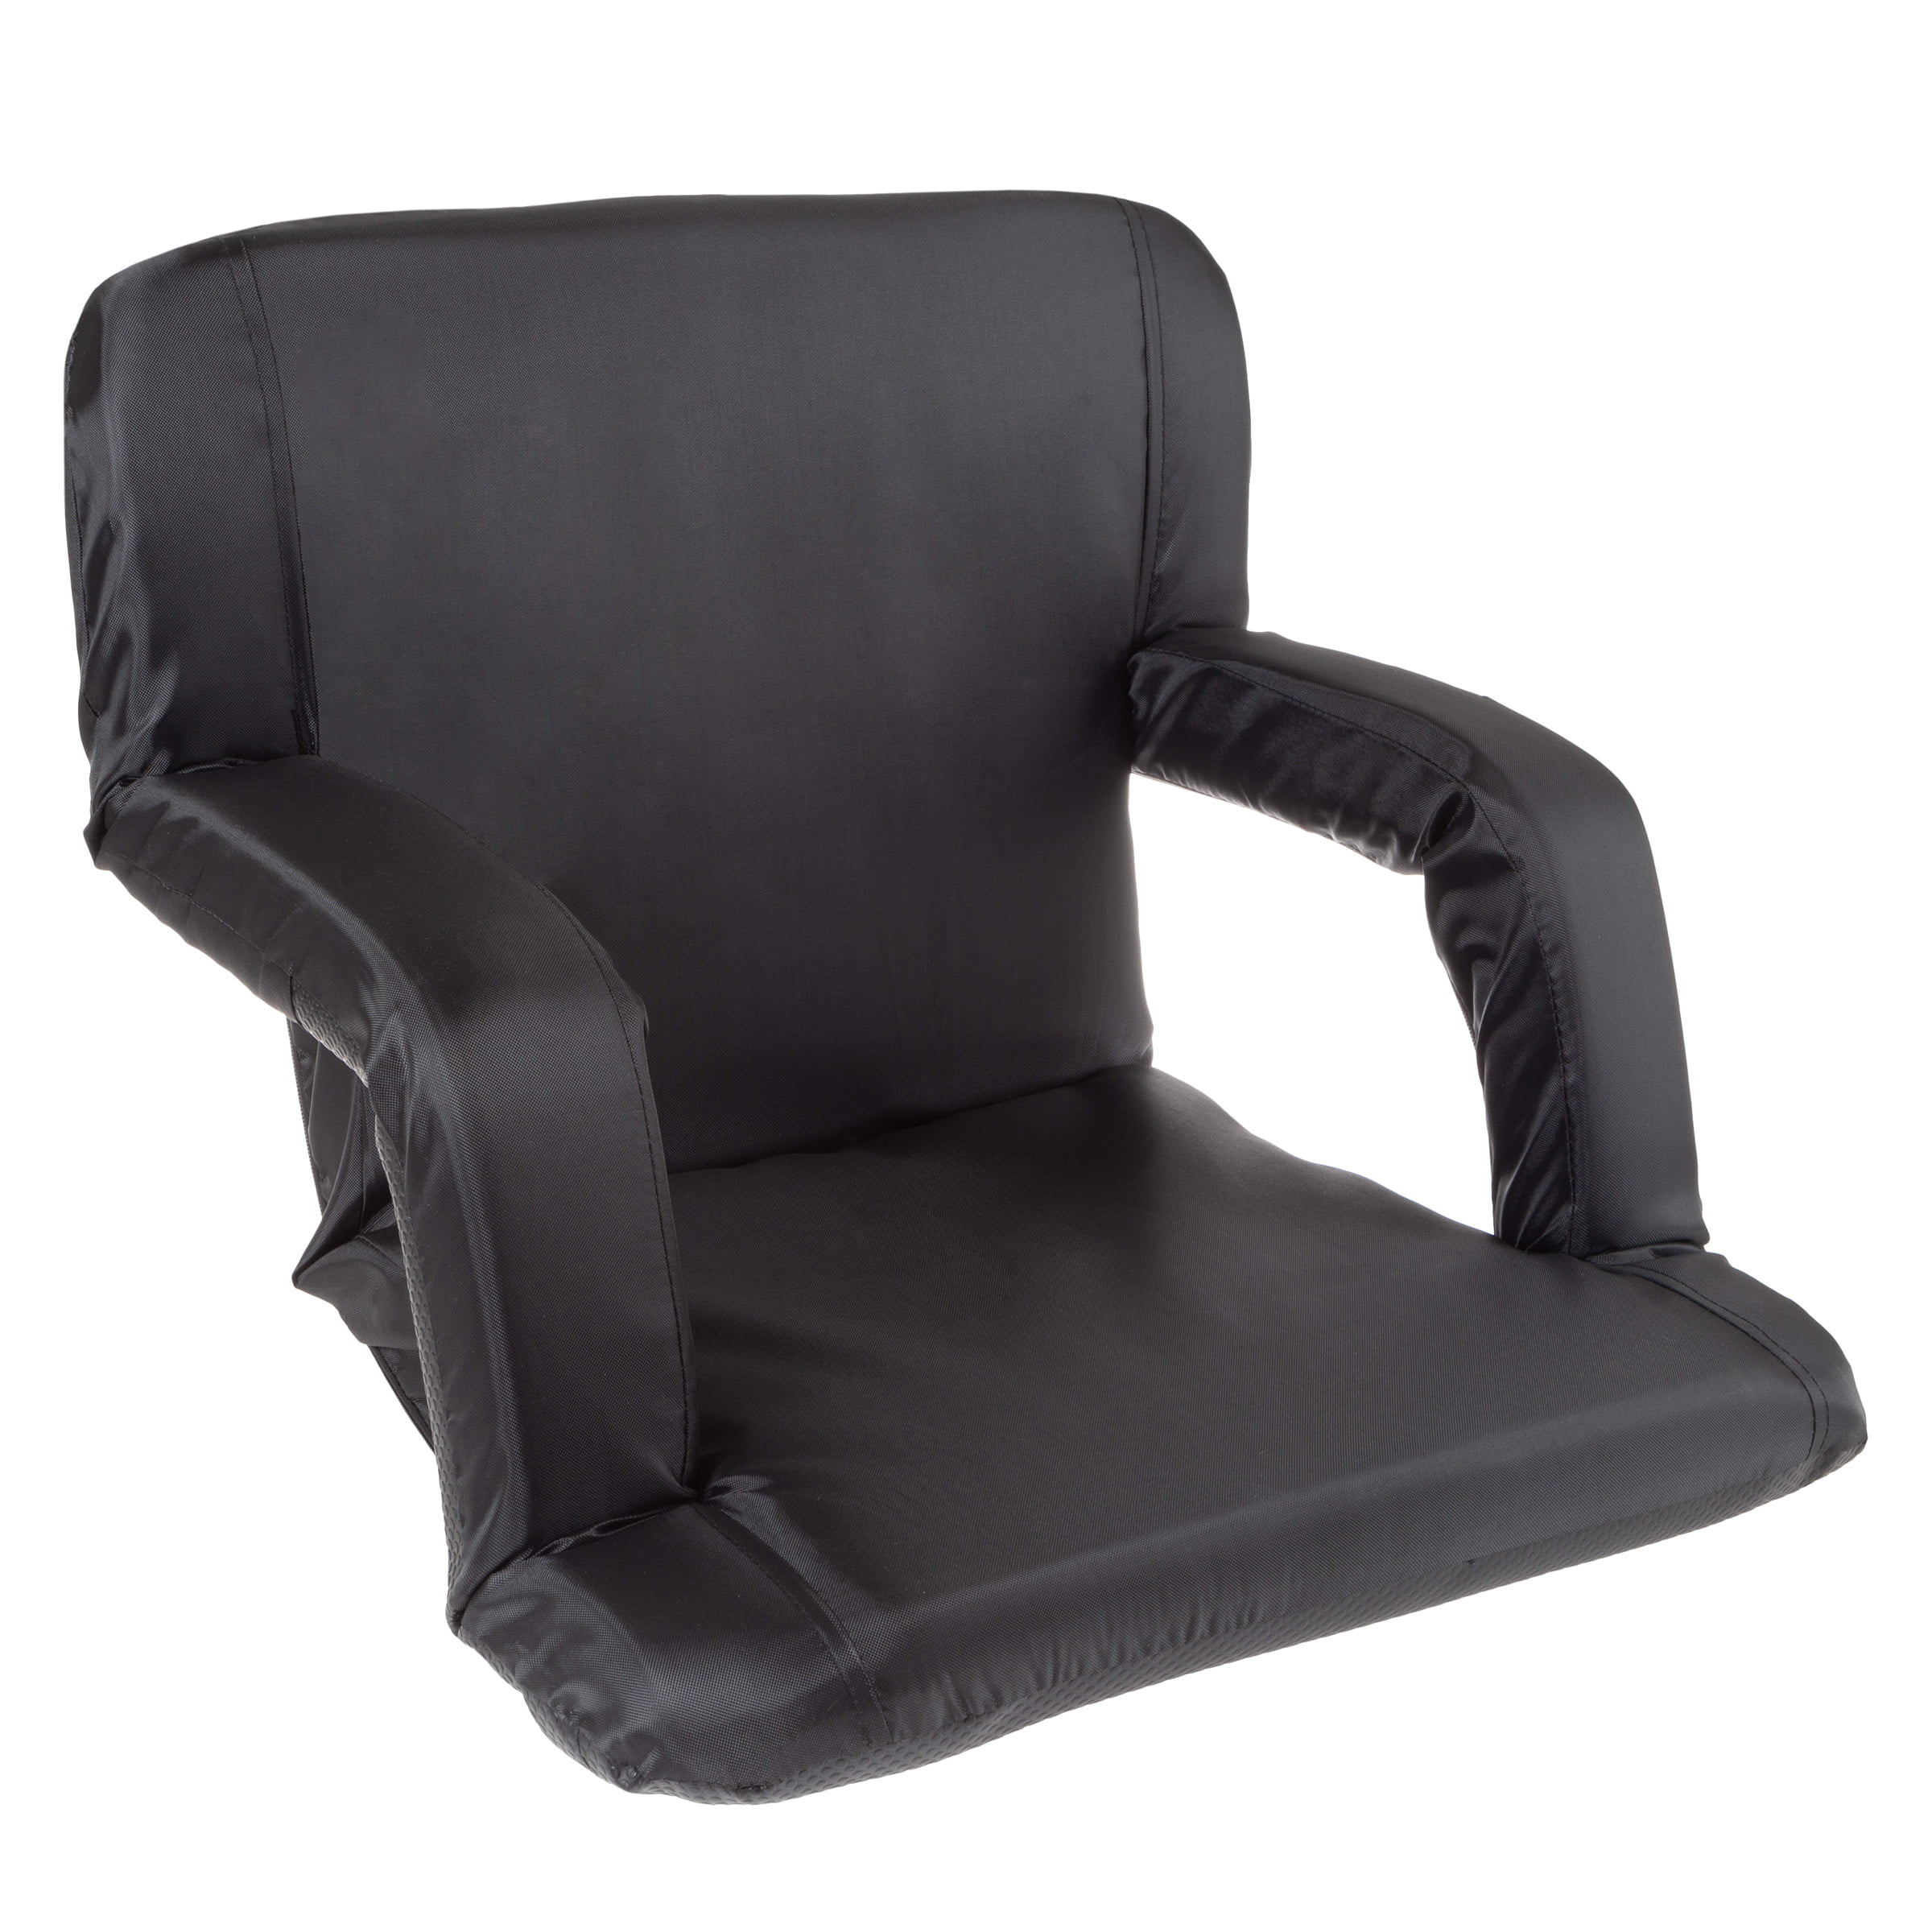 Arms Fits Game Changer Chairs Padded The Stadium Chair Co